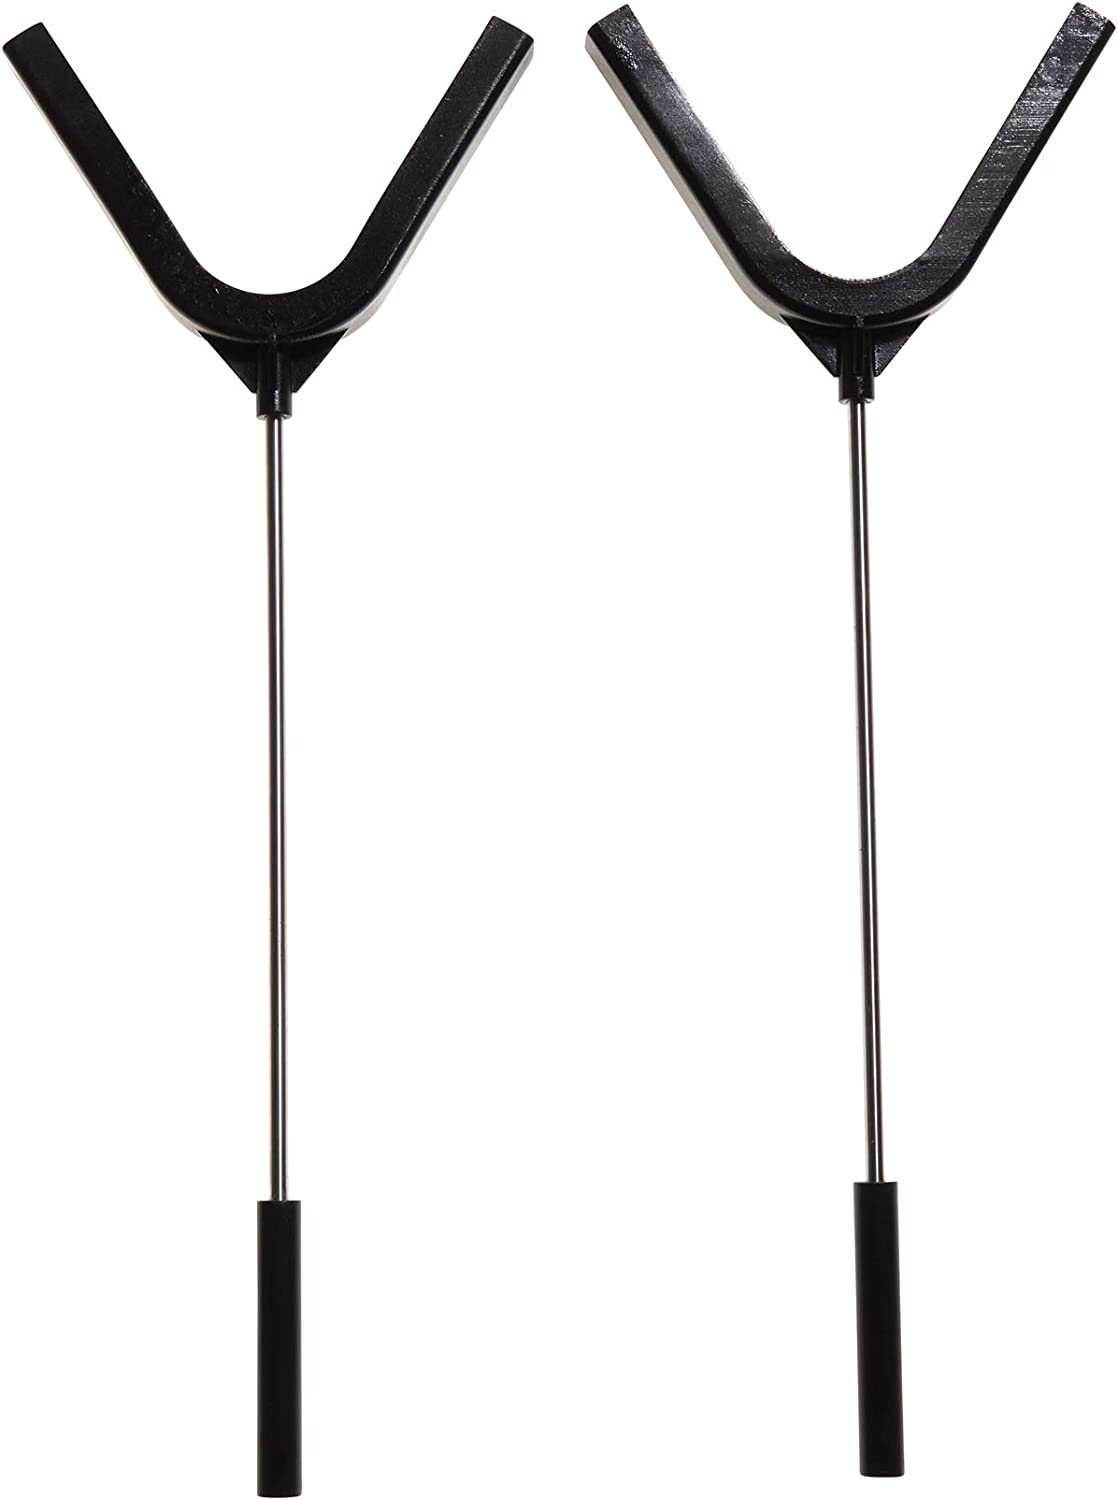 Allen Company EZ-Aim Clay Target Holder, Holds 4.5 inch Clay Targets, 2-Pack, Black, one Size